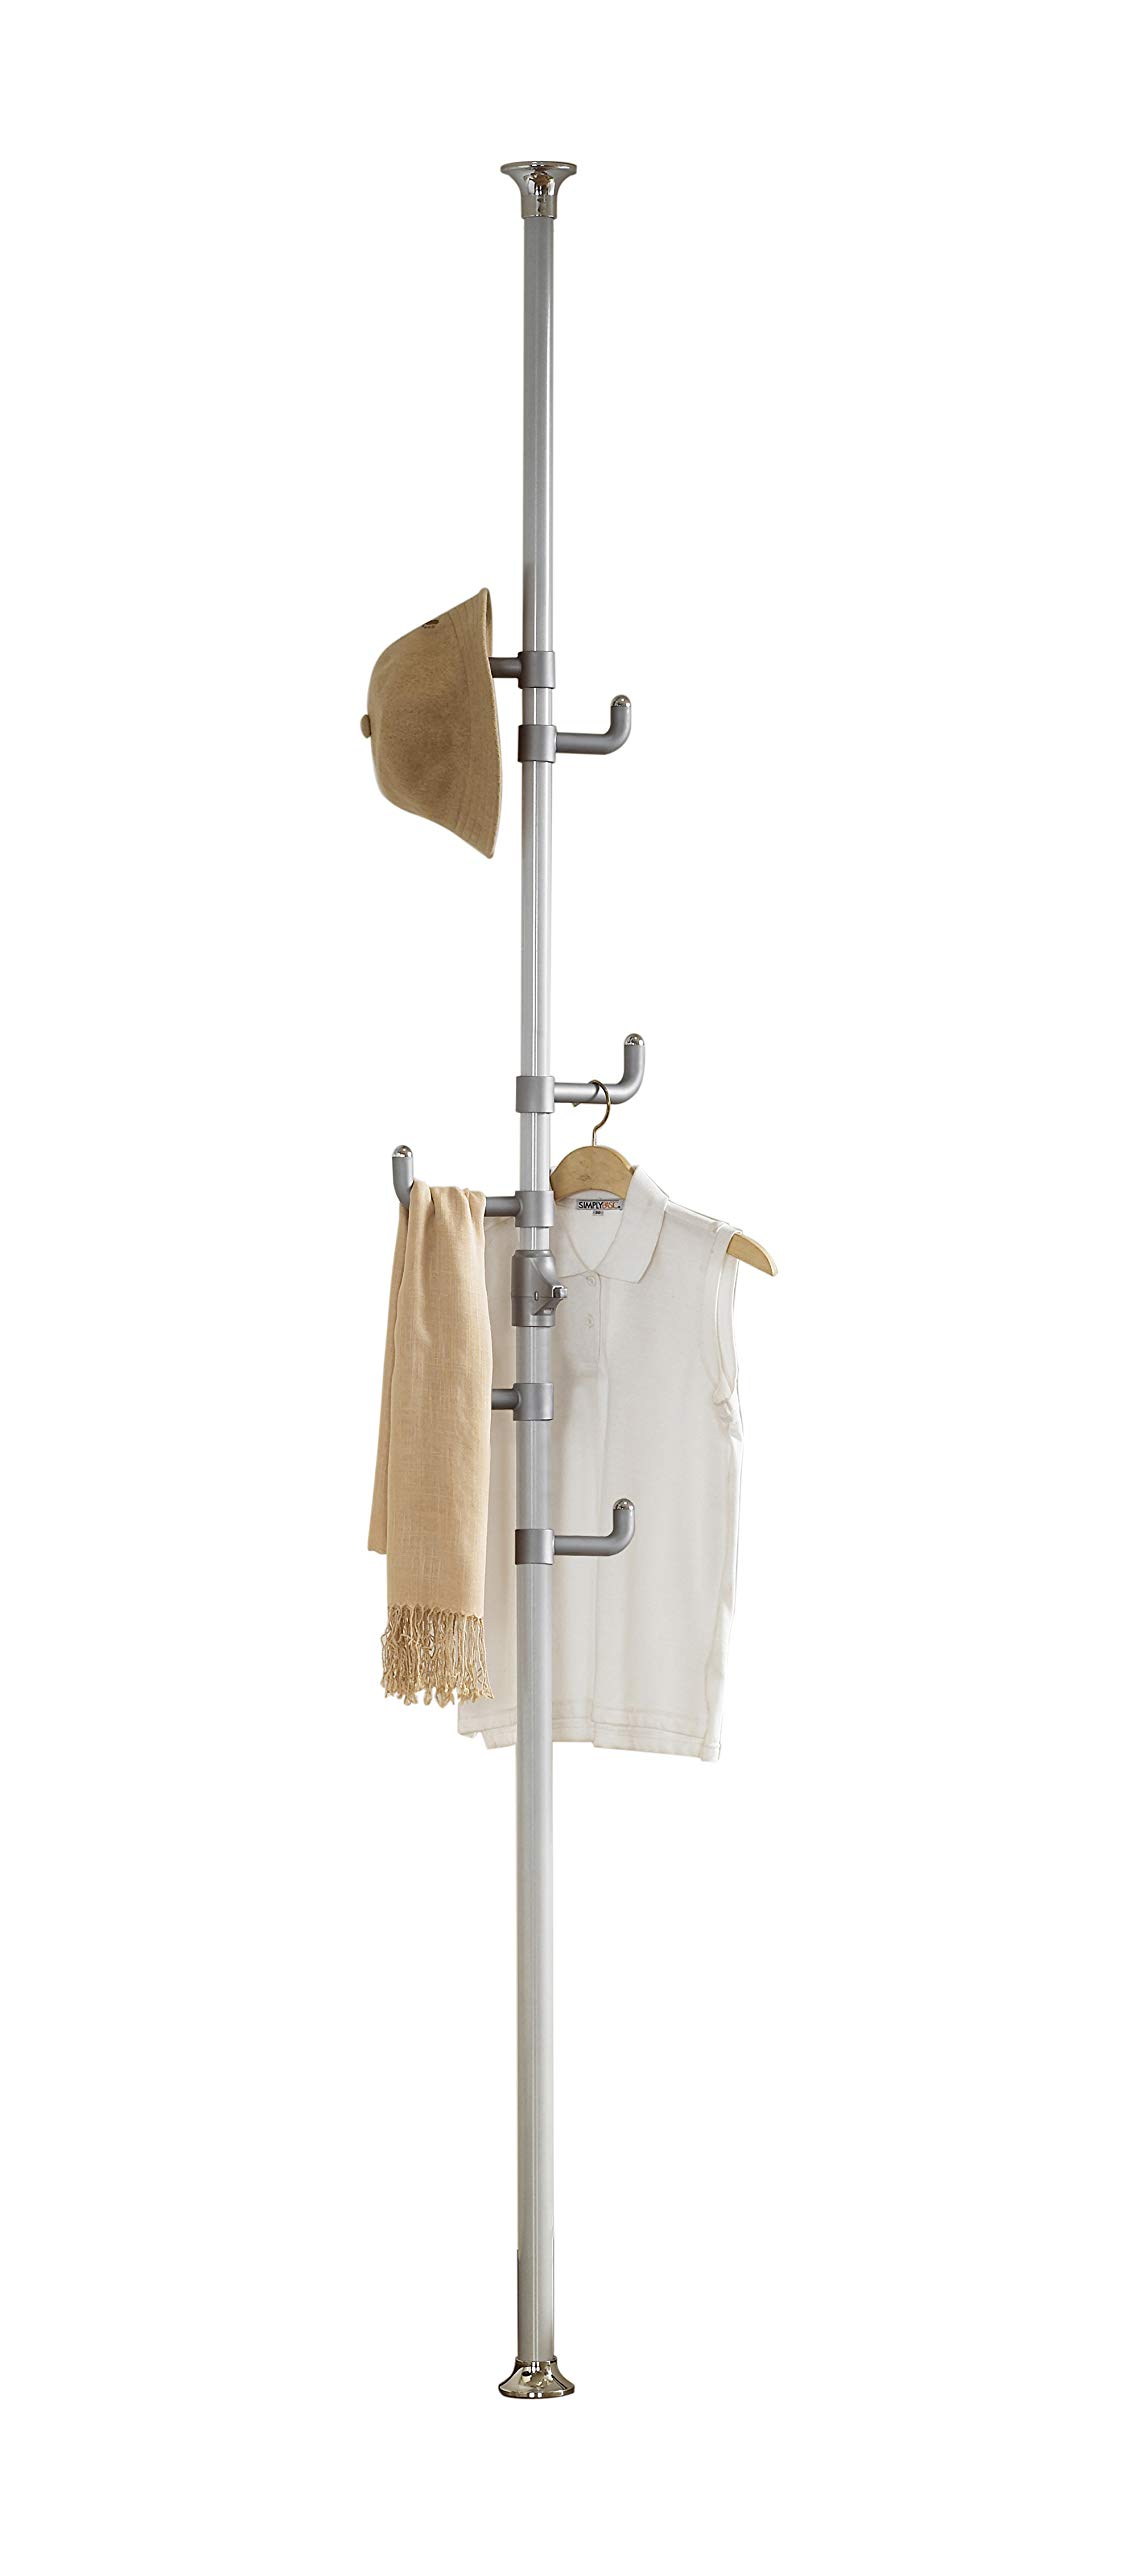 PRINCE HANGER, One-touch Coat Rack, Silver, Steel, Free Standing, PHUS-0012